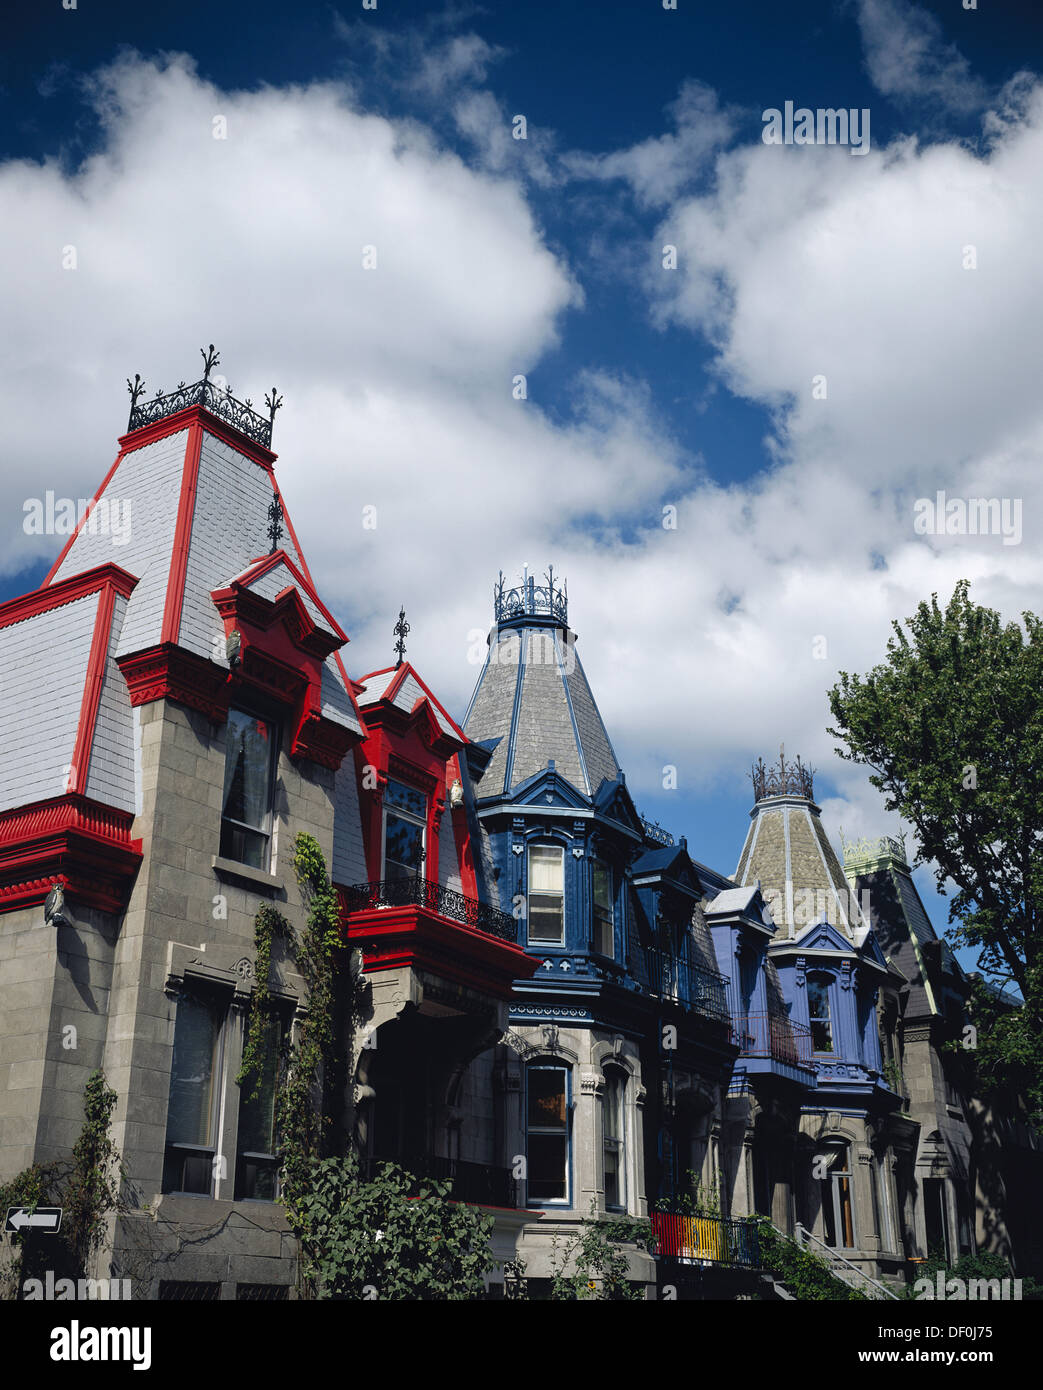 Canada, Quebec, Montreal, Colorful Houses at Saint-Louis Square. - Stock Image